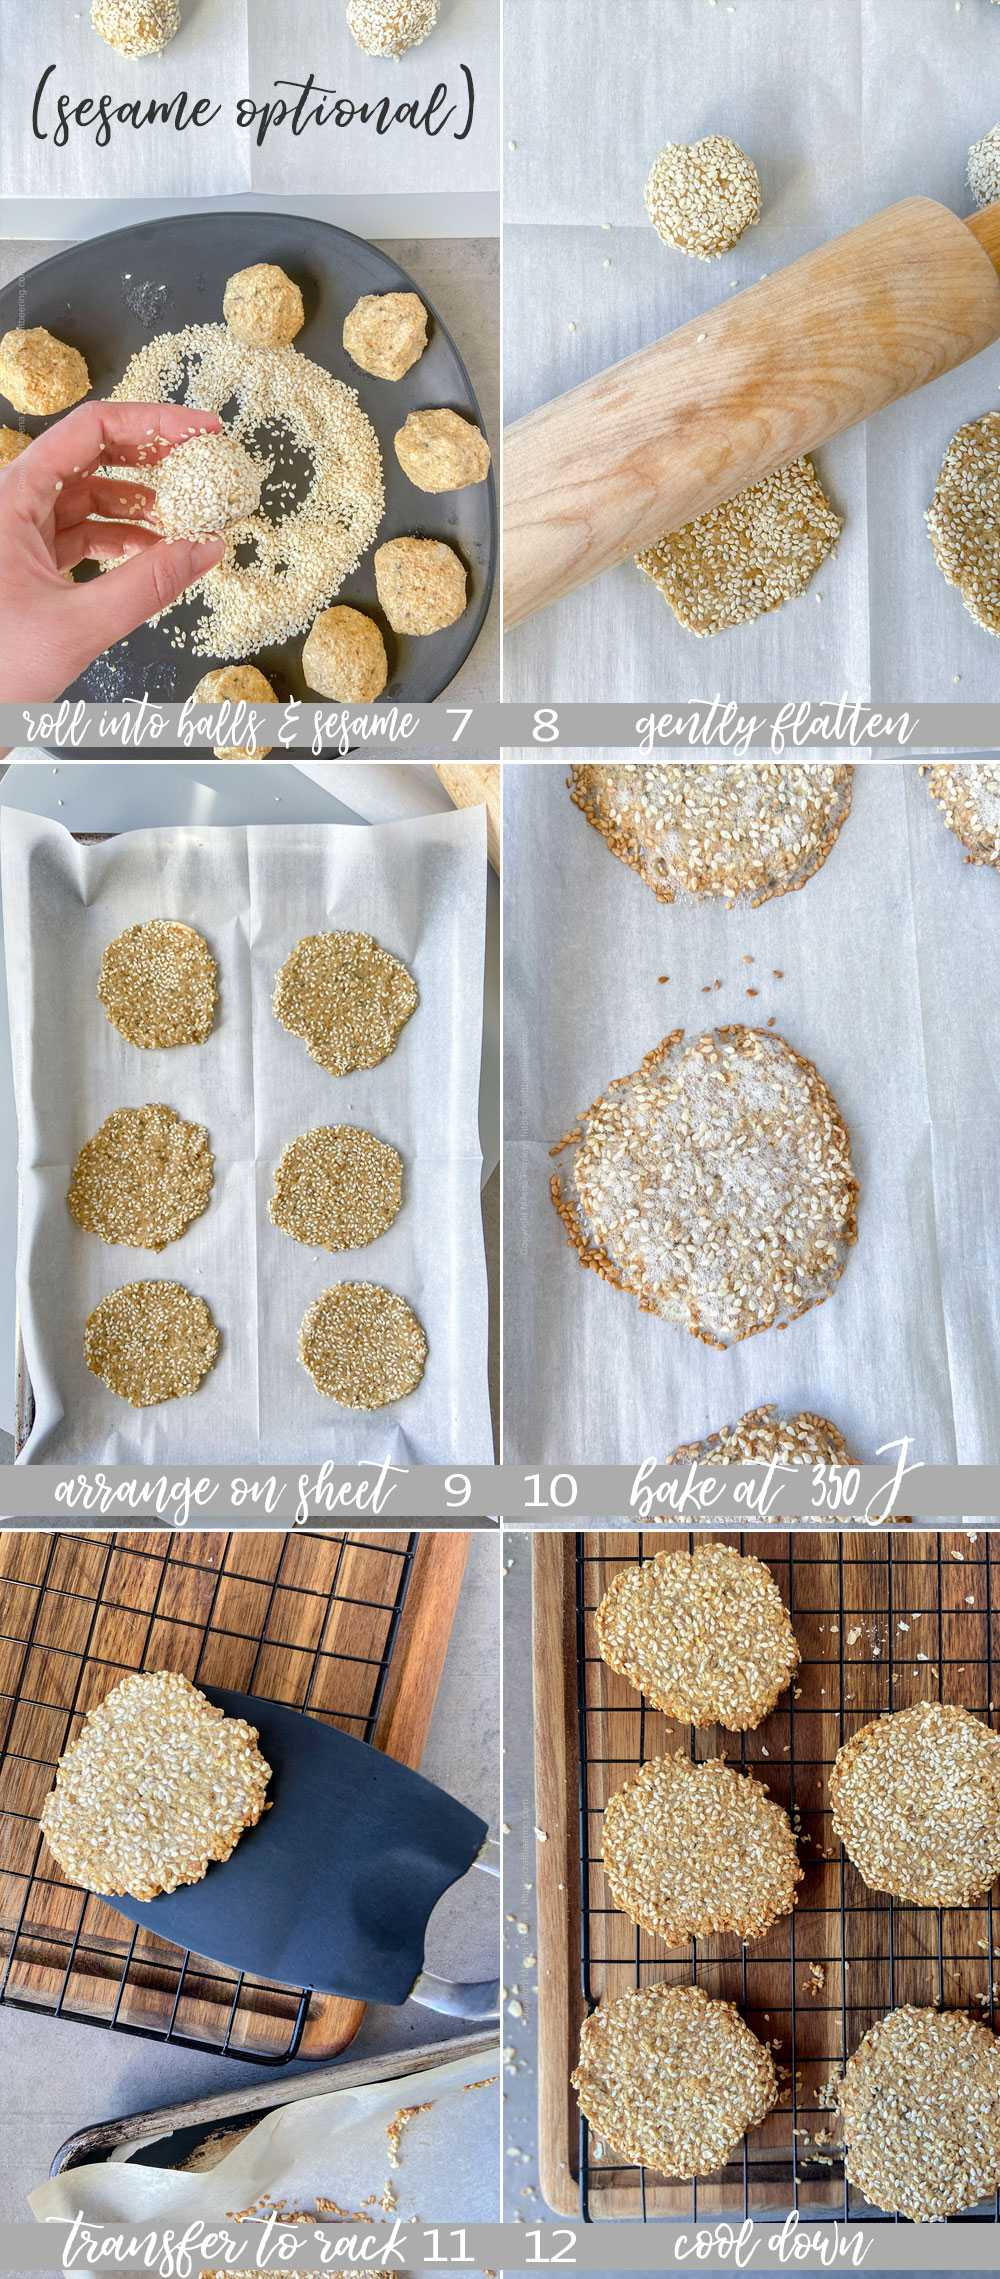 How to make oatcakes, steps by step. Part 2 collage.